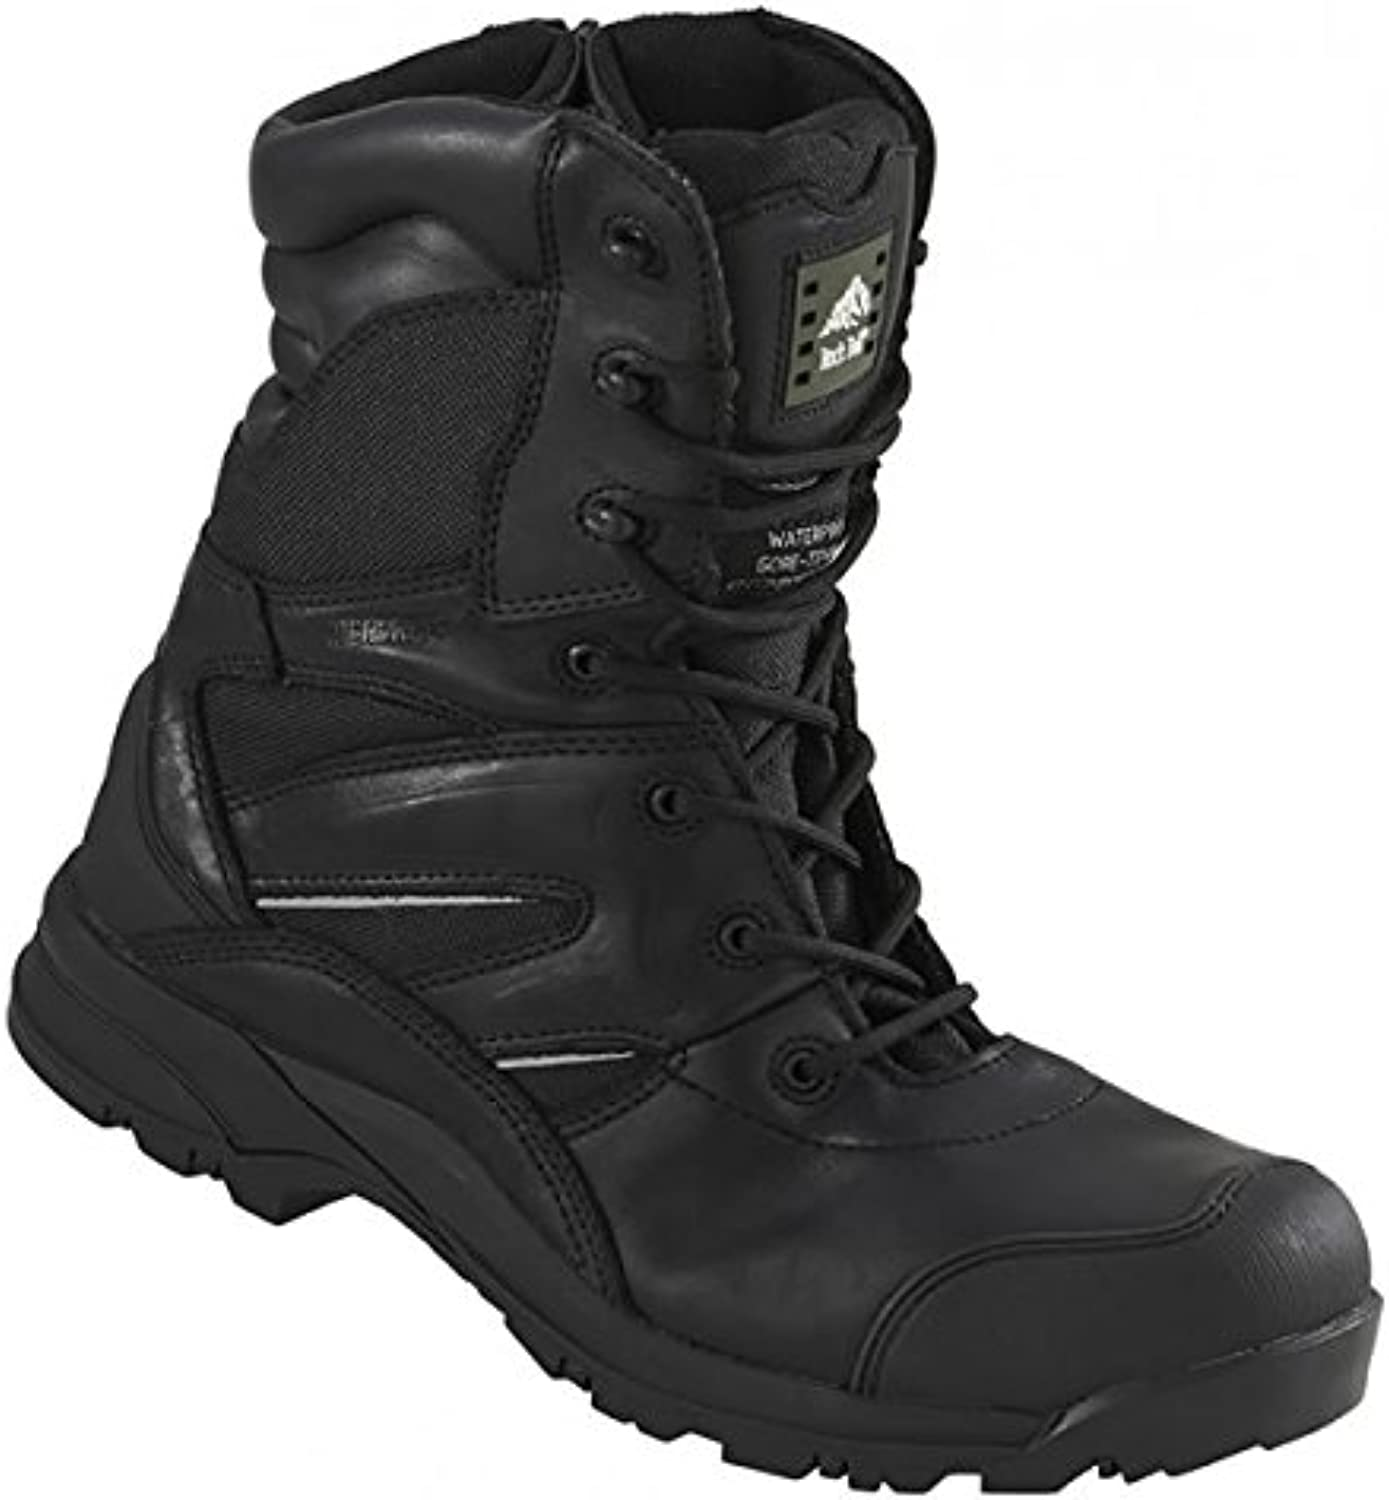 Rock Fall RF4500 Titanium 14 Safety Boot, Black, UK